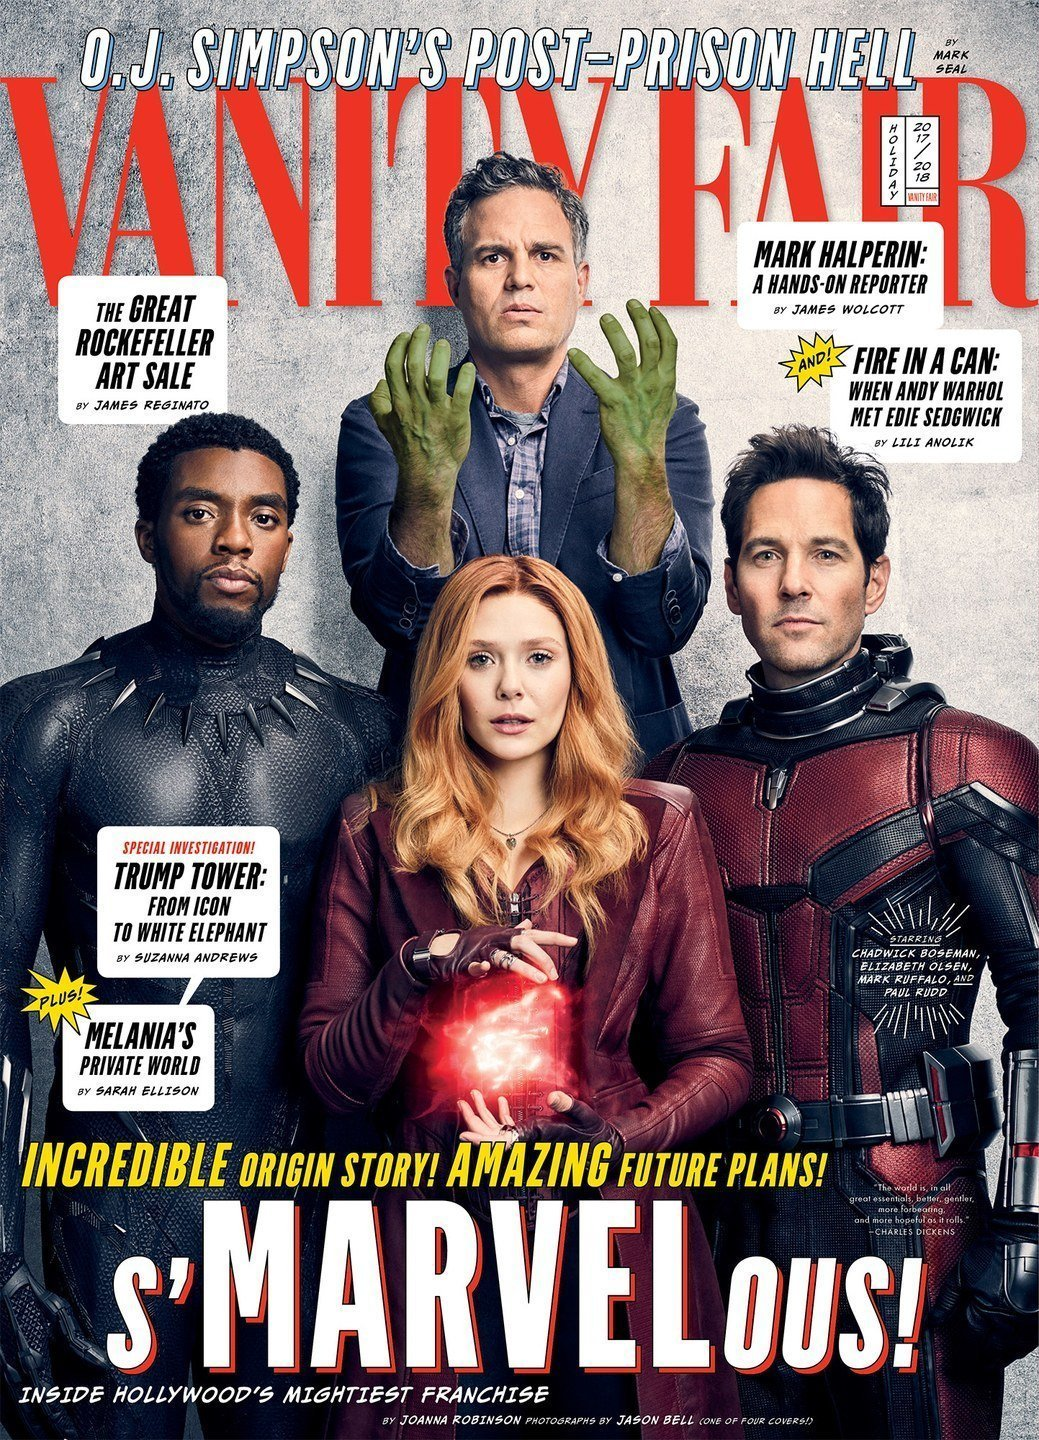 Couverture de Vanity Fair avec Hulk, Black Panther, Ant-Man et Scarlet Witch